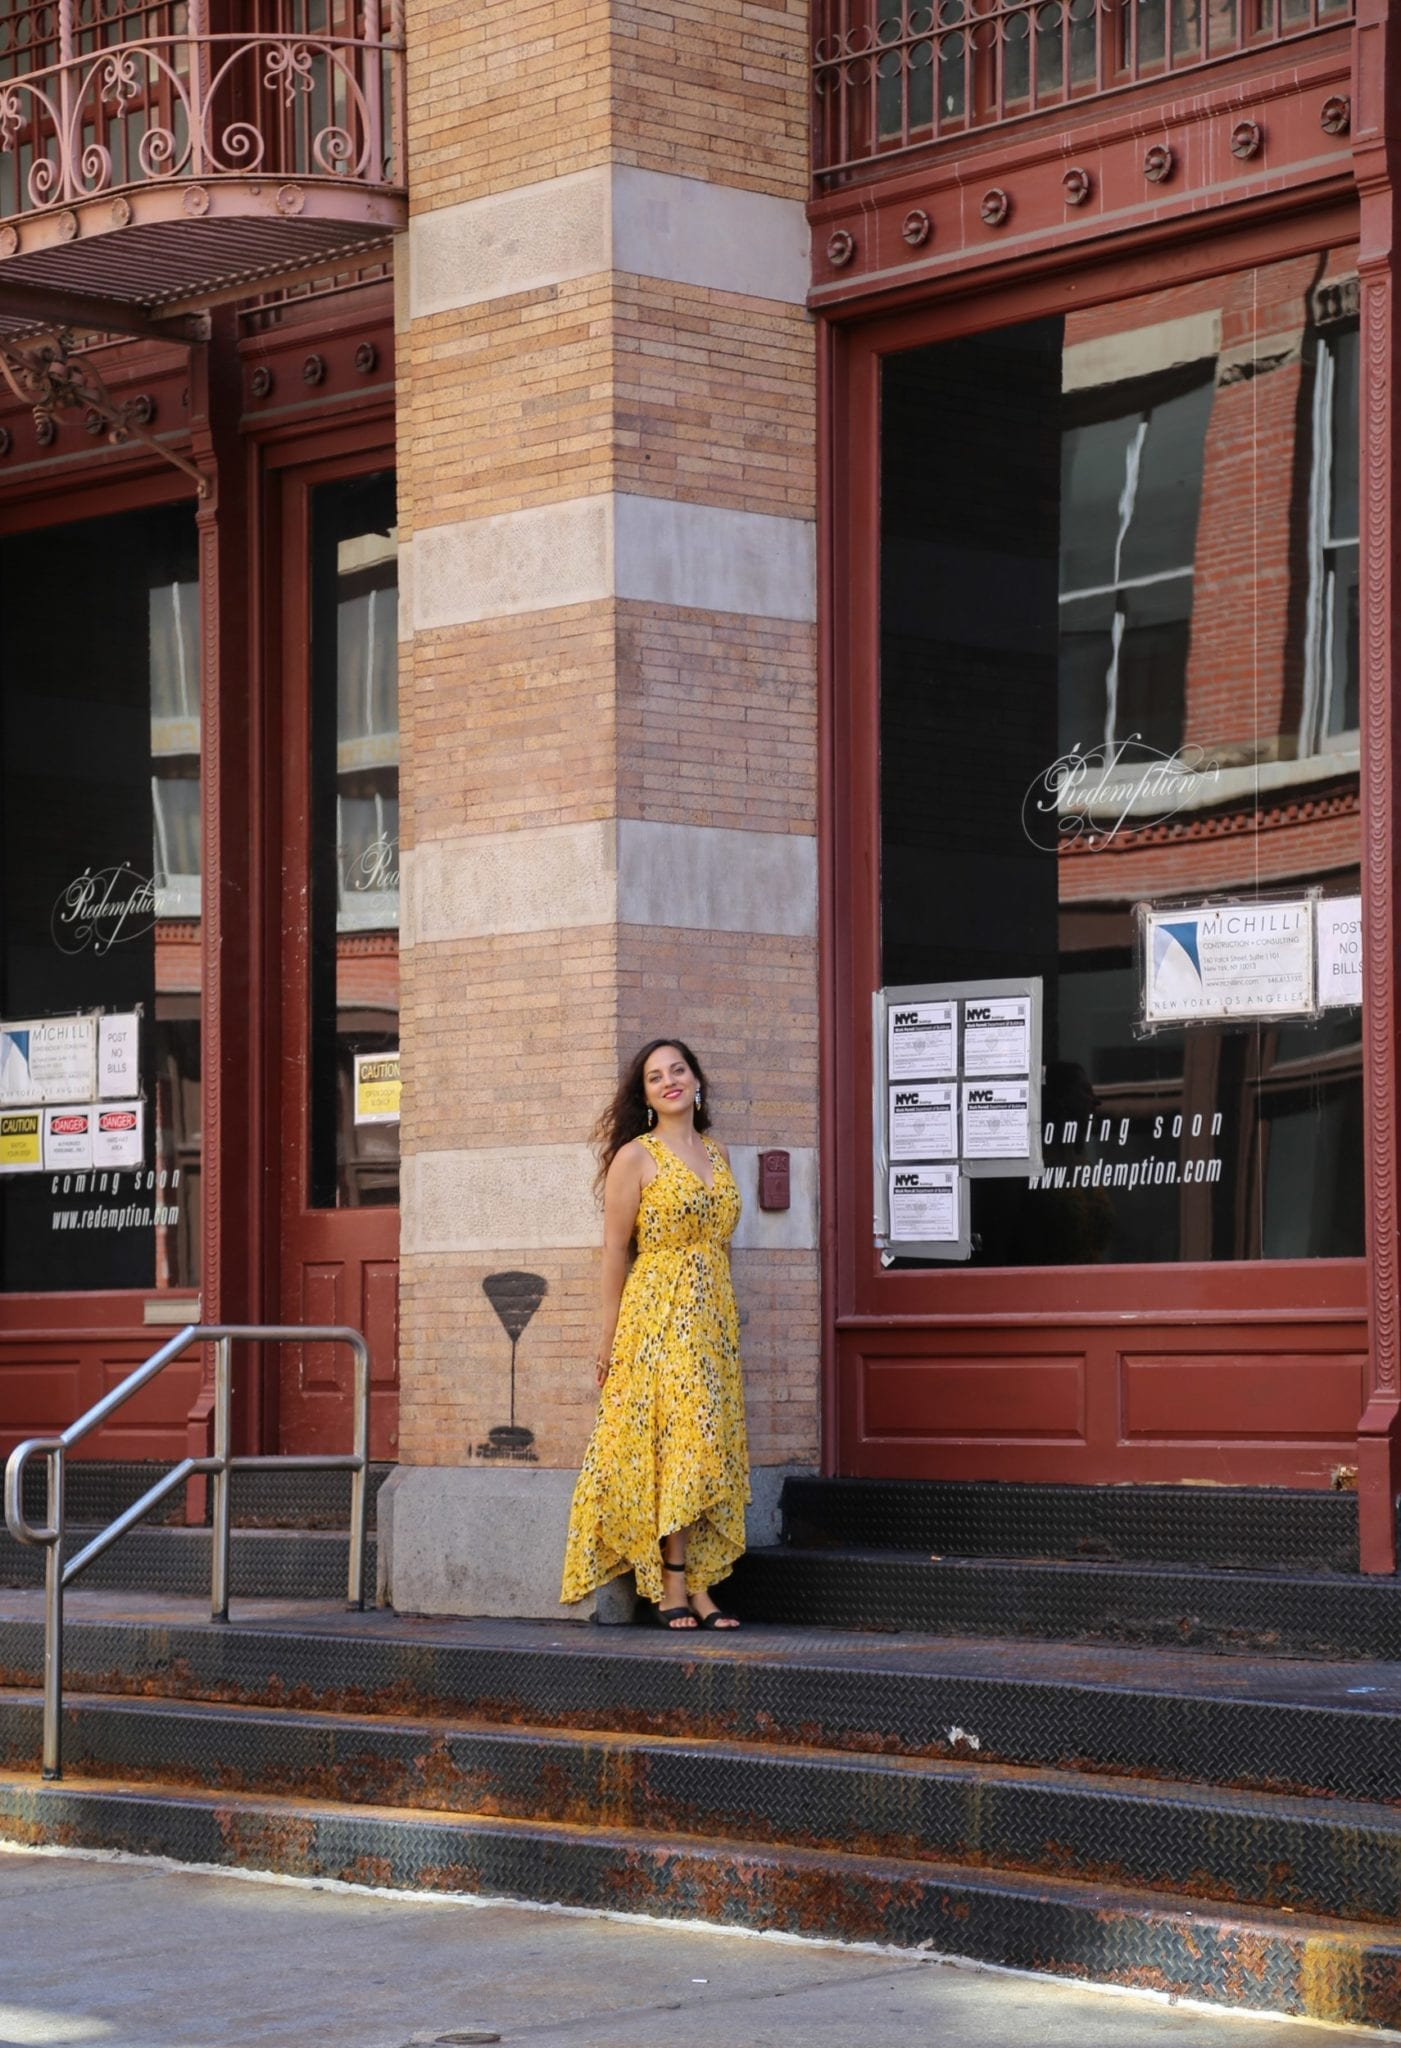 Kate standing in front of a column in a yellow dress in SoHo, NYC.